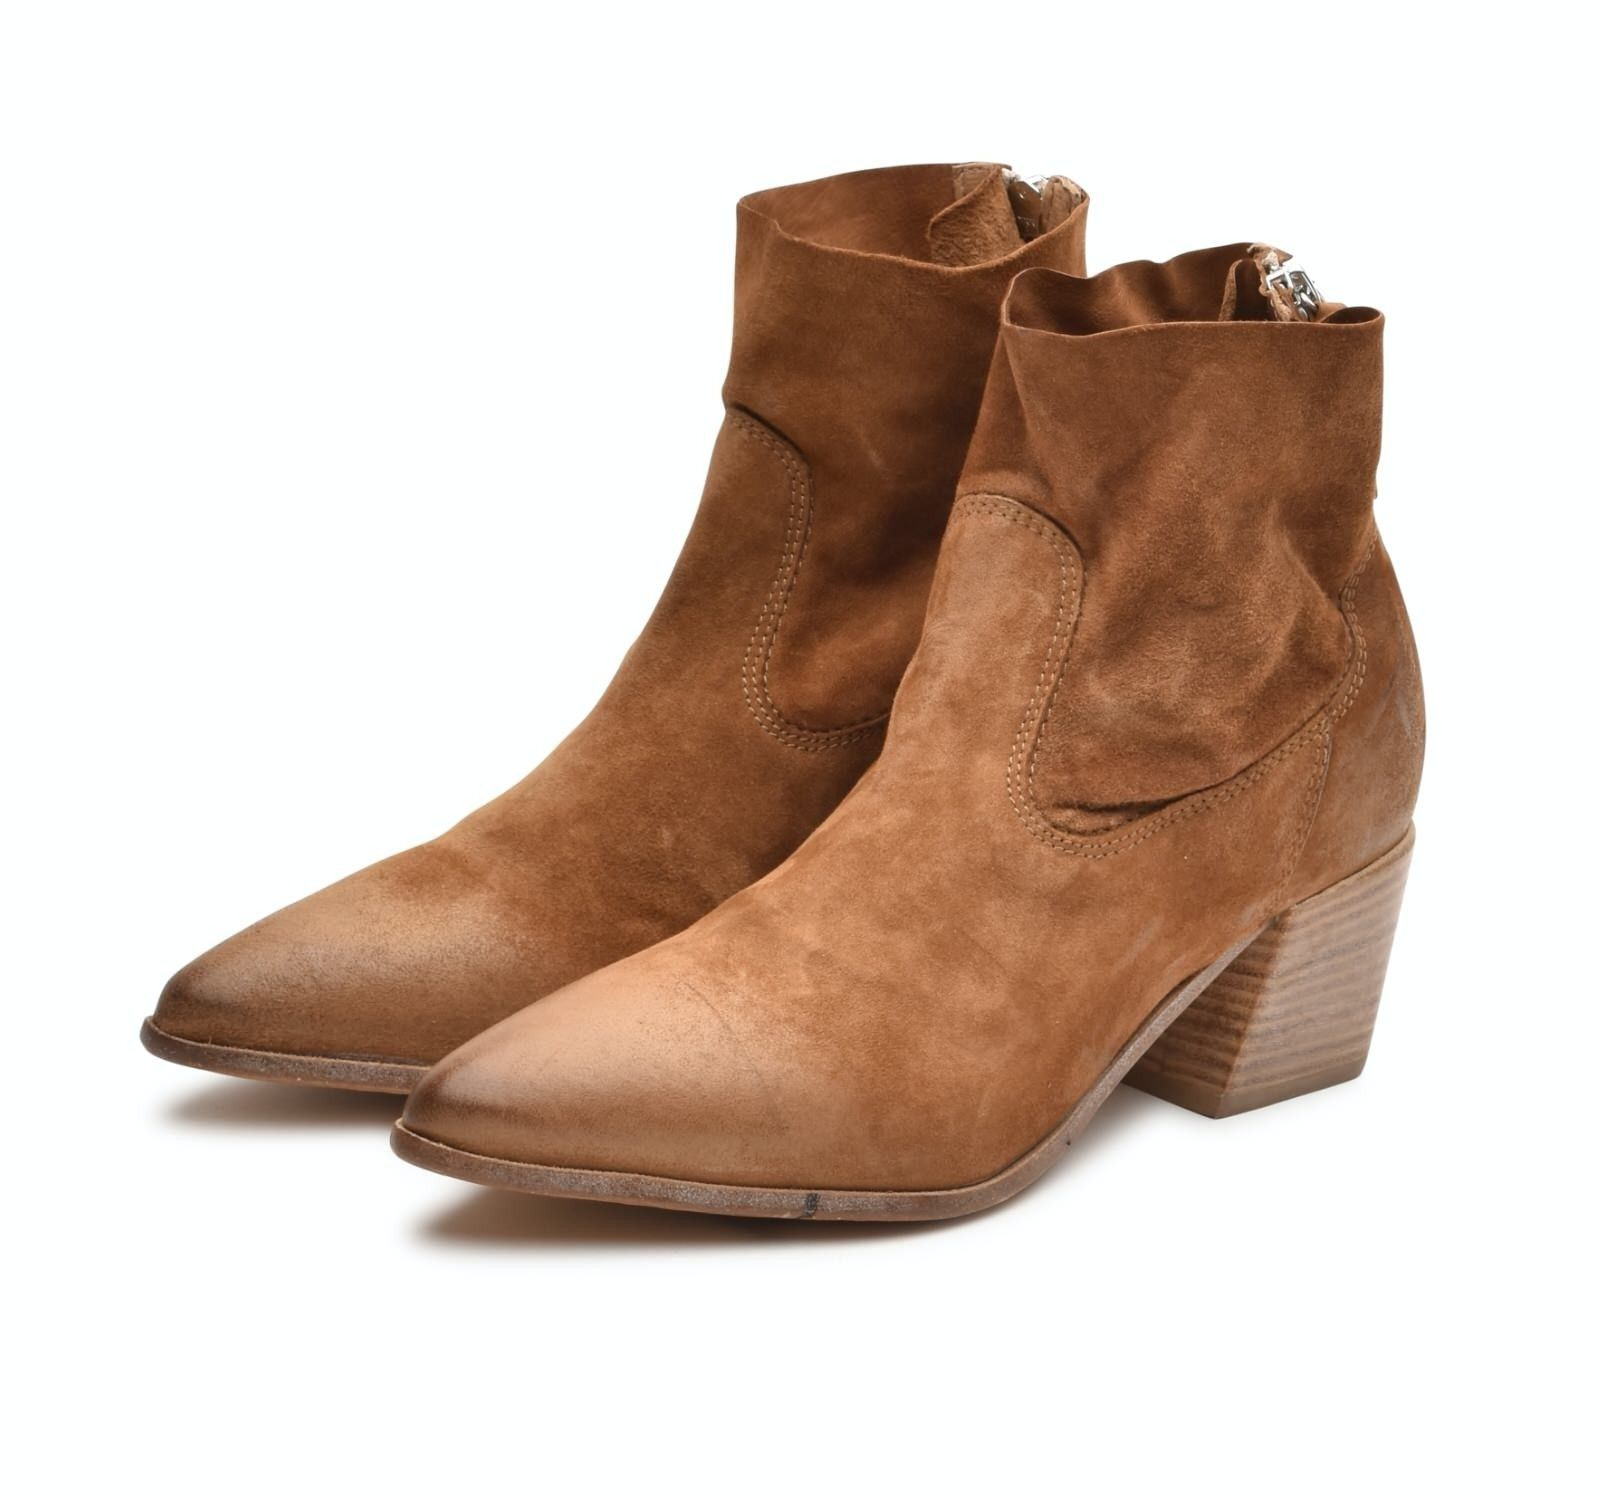 MOMA - Damen Stiefelette - City 694 - Marrone